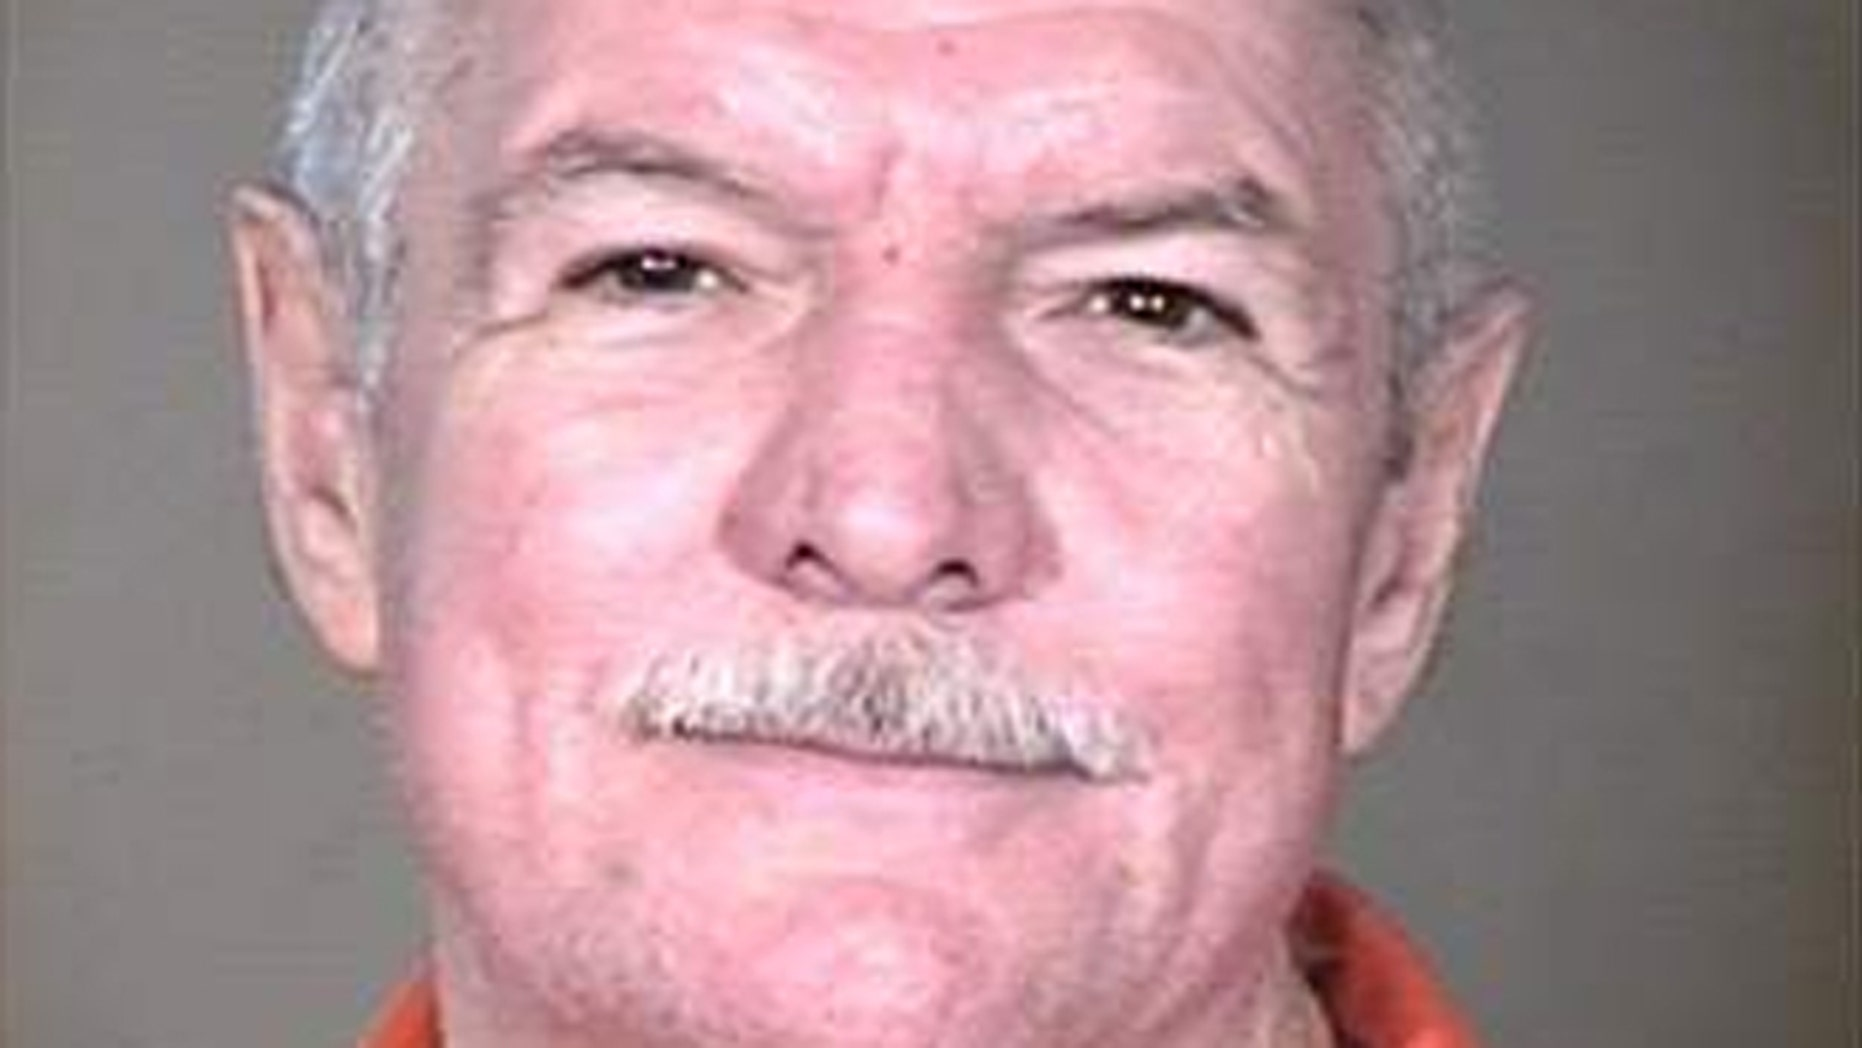 Richard Dale Stokley, 60, was put to death at a prison in Florence, Arizona, two decades after he and another man were convicted of murdering Mandy Meyers and Mary Snyder in 1991.